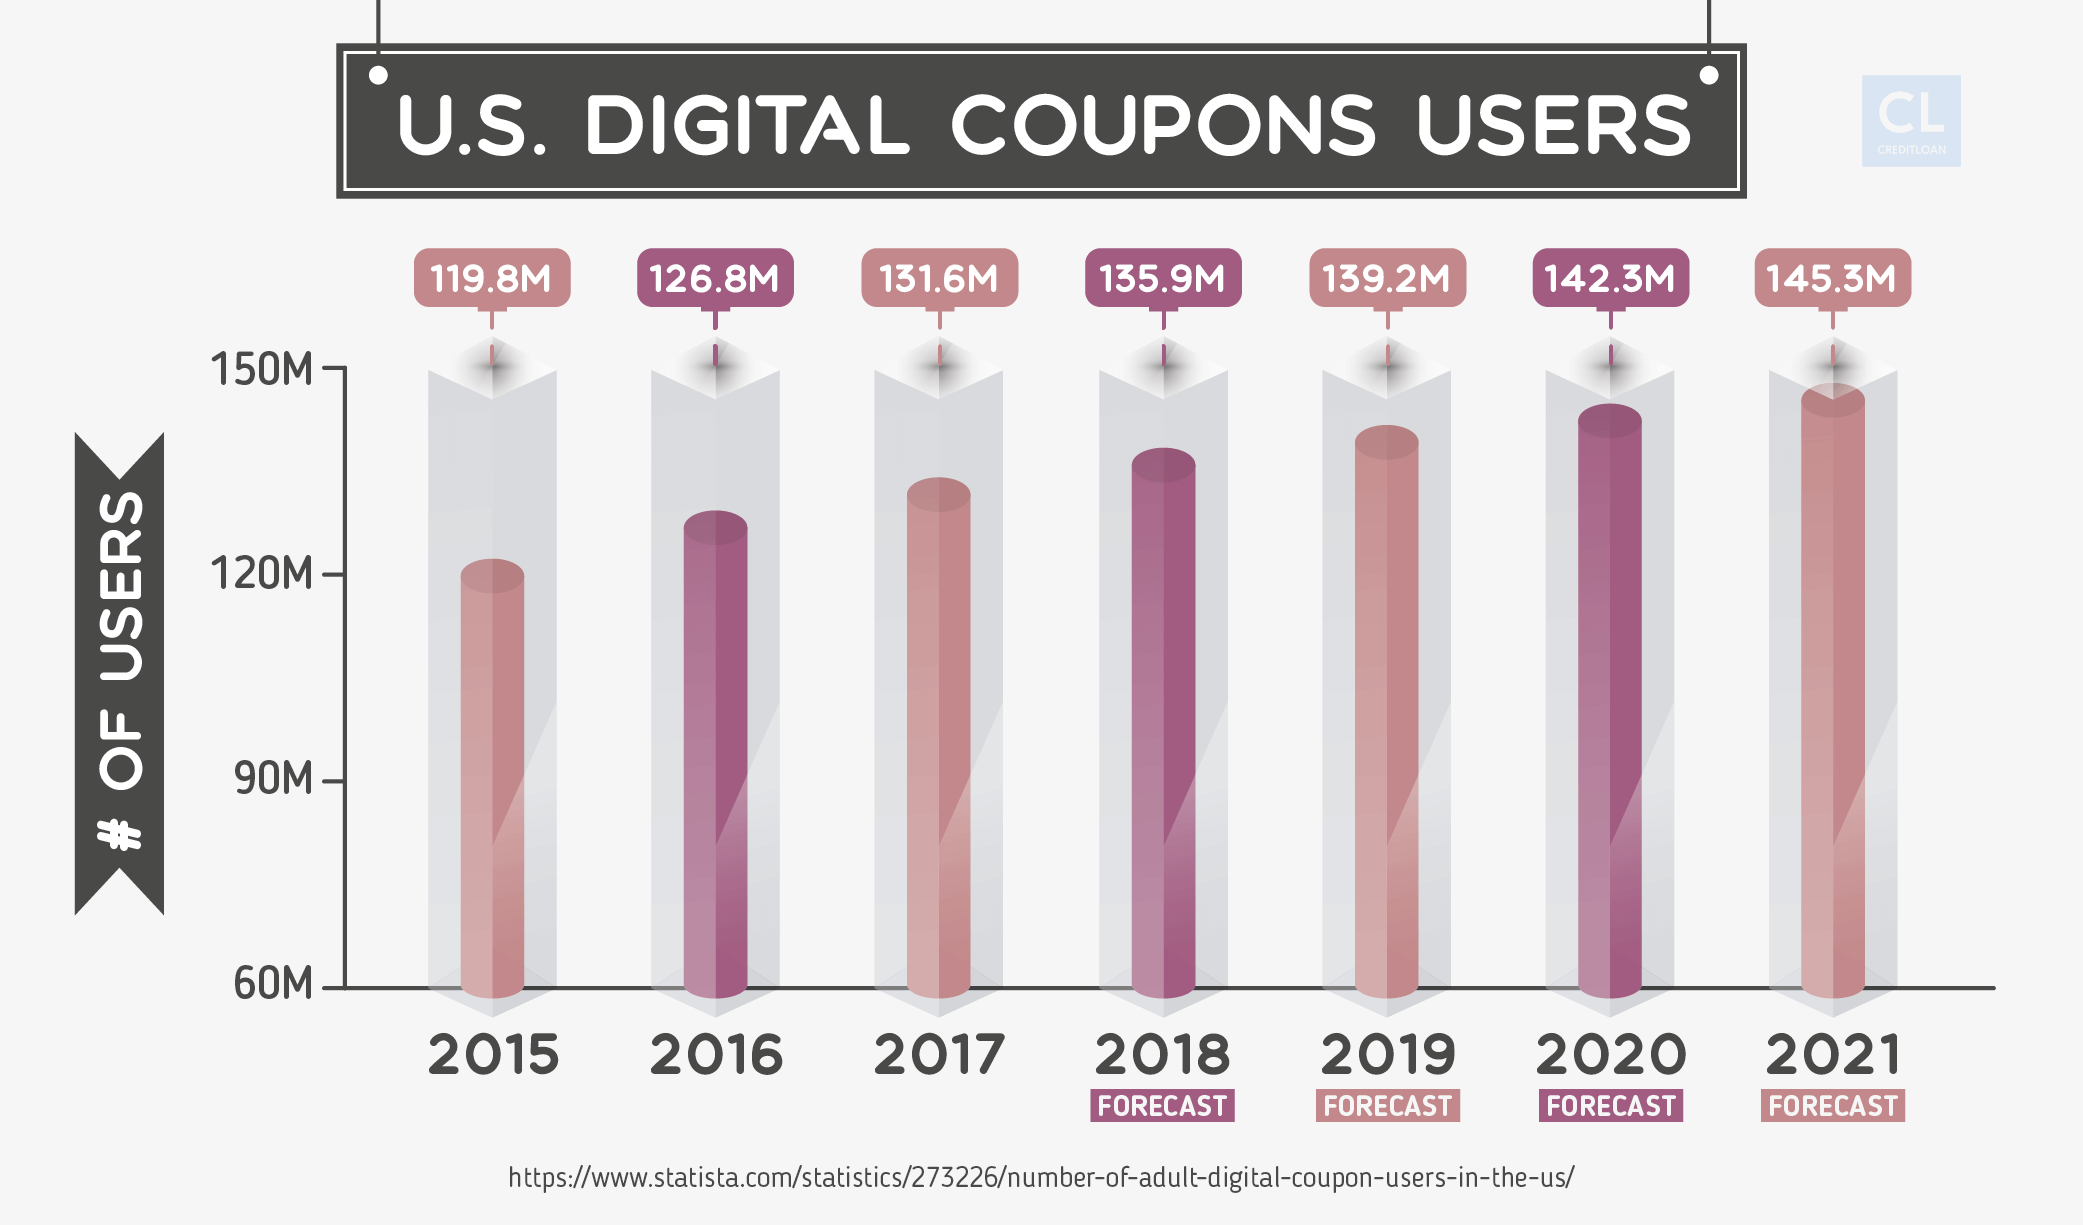 Digital Coupon Use in the US